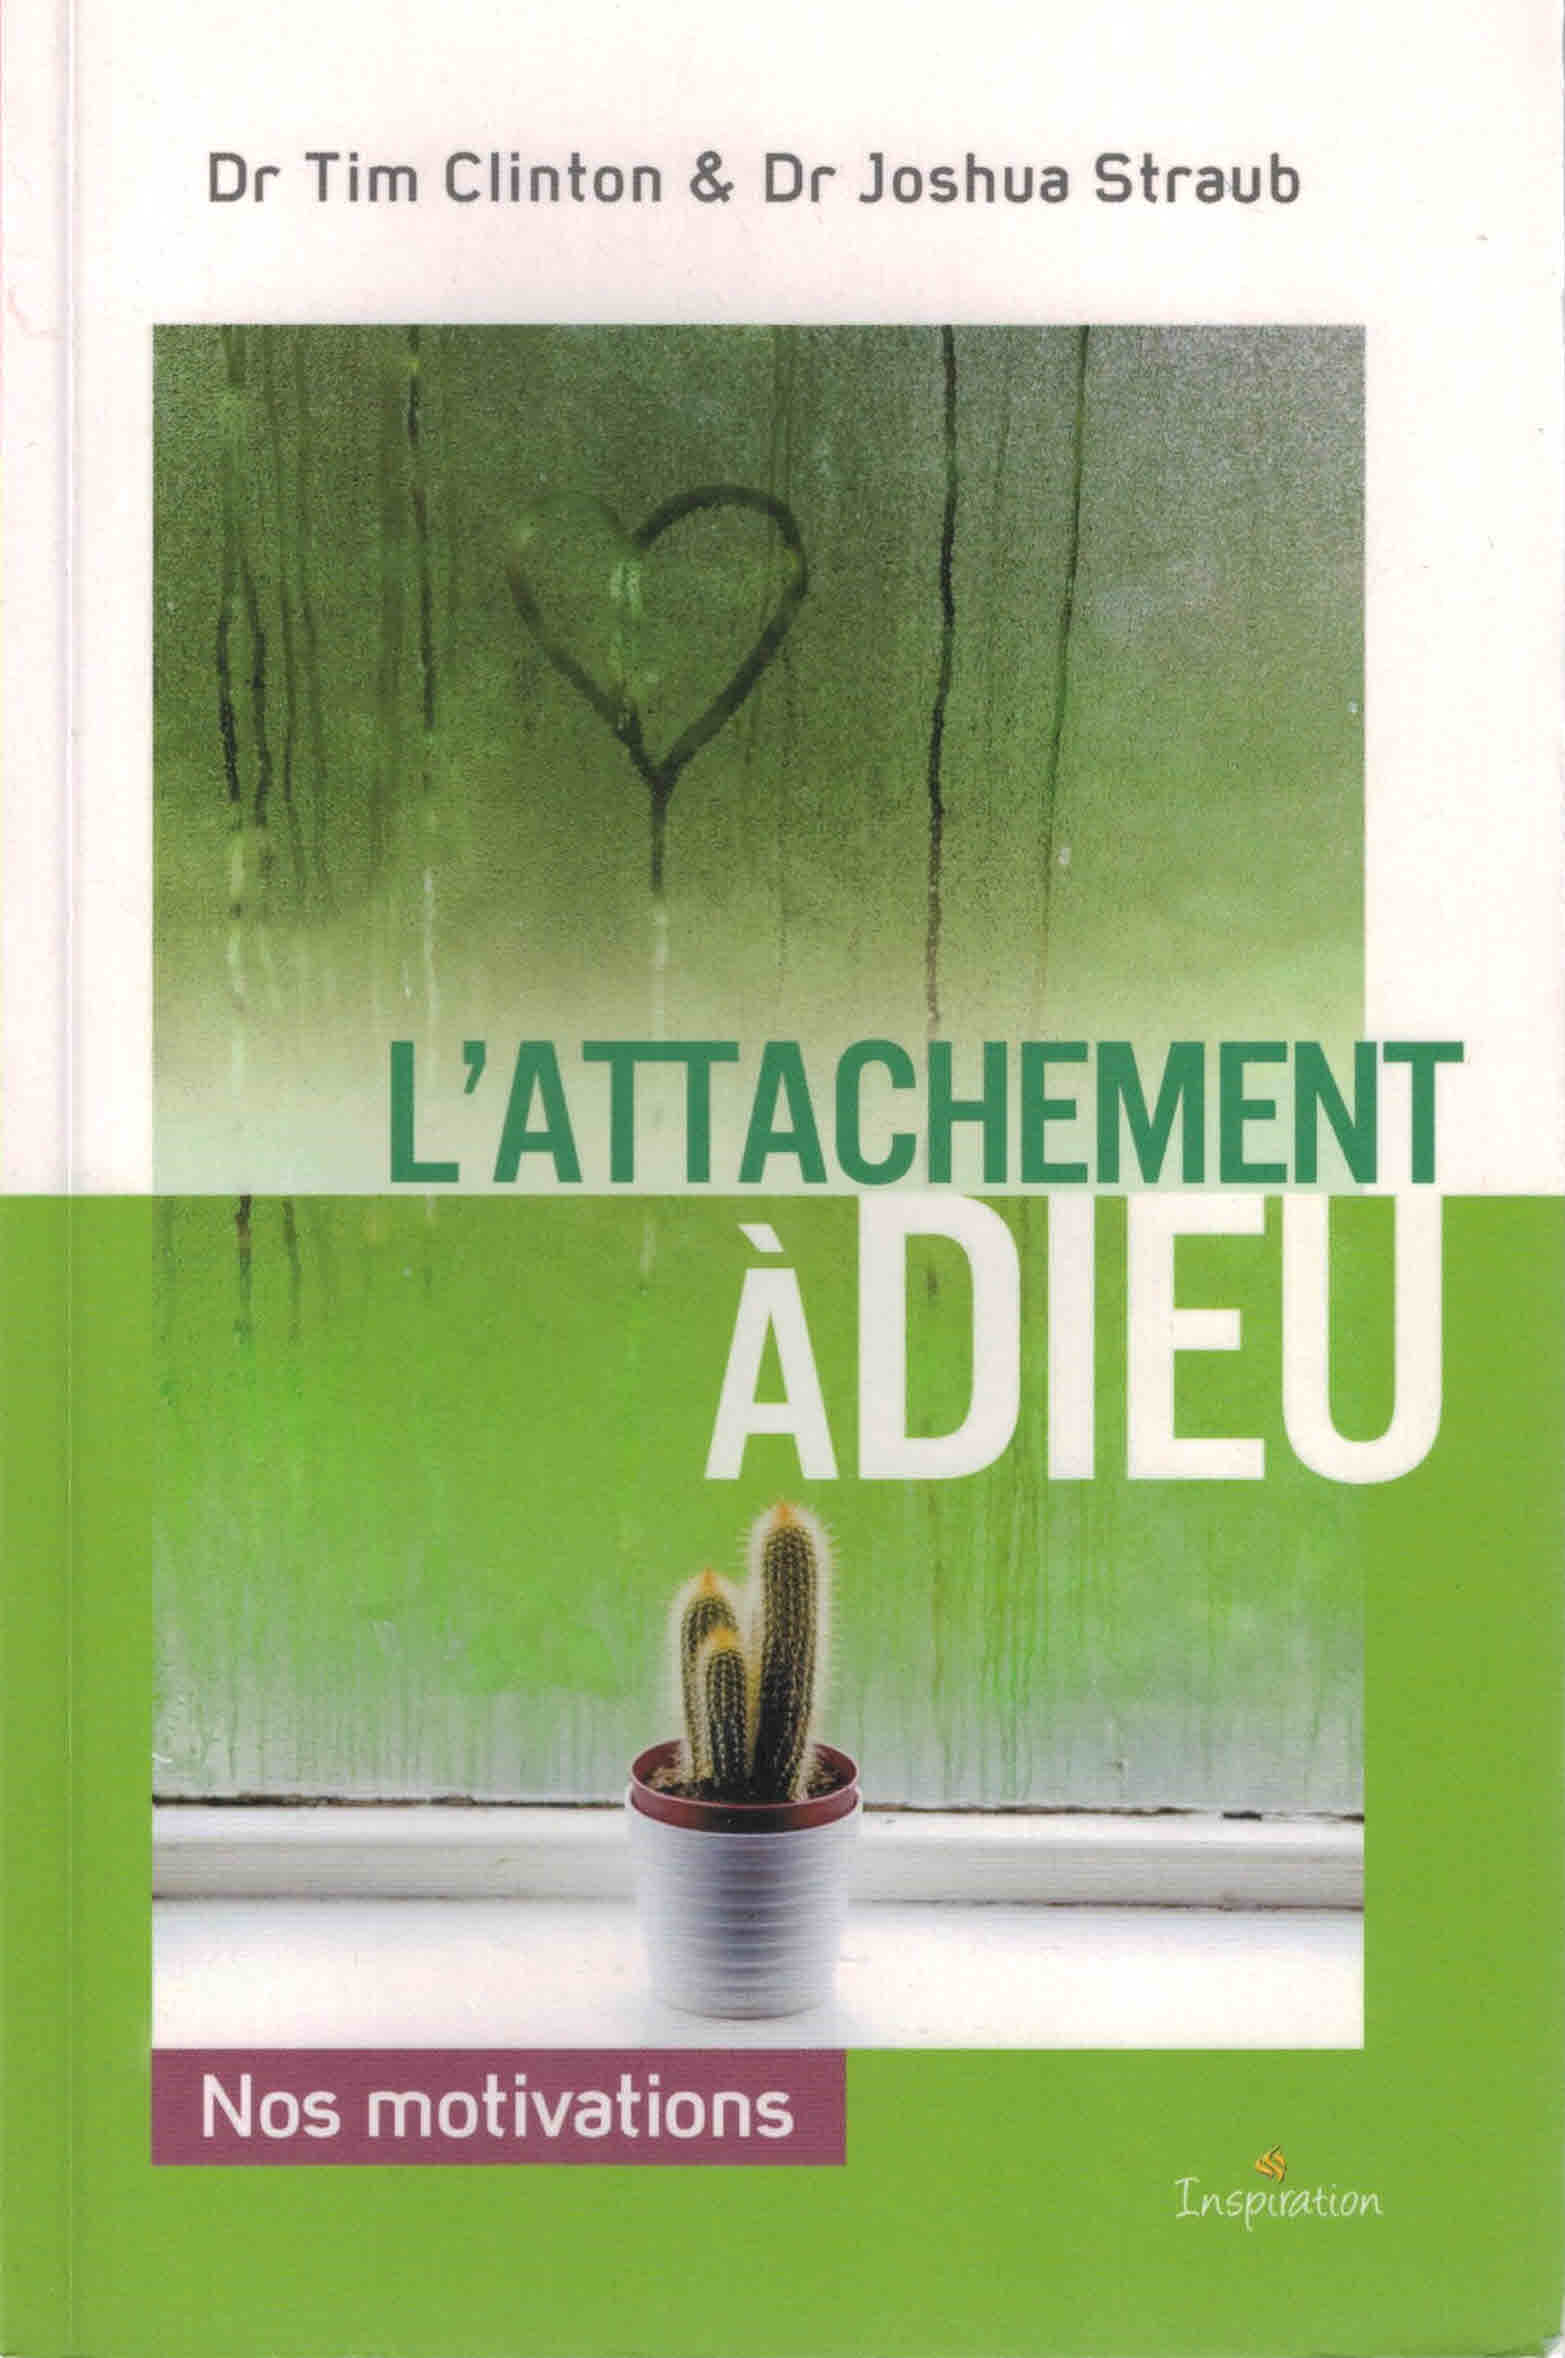 L'attachement à Dieu - Nos motivations